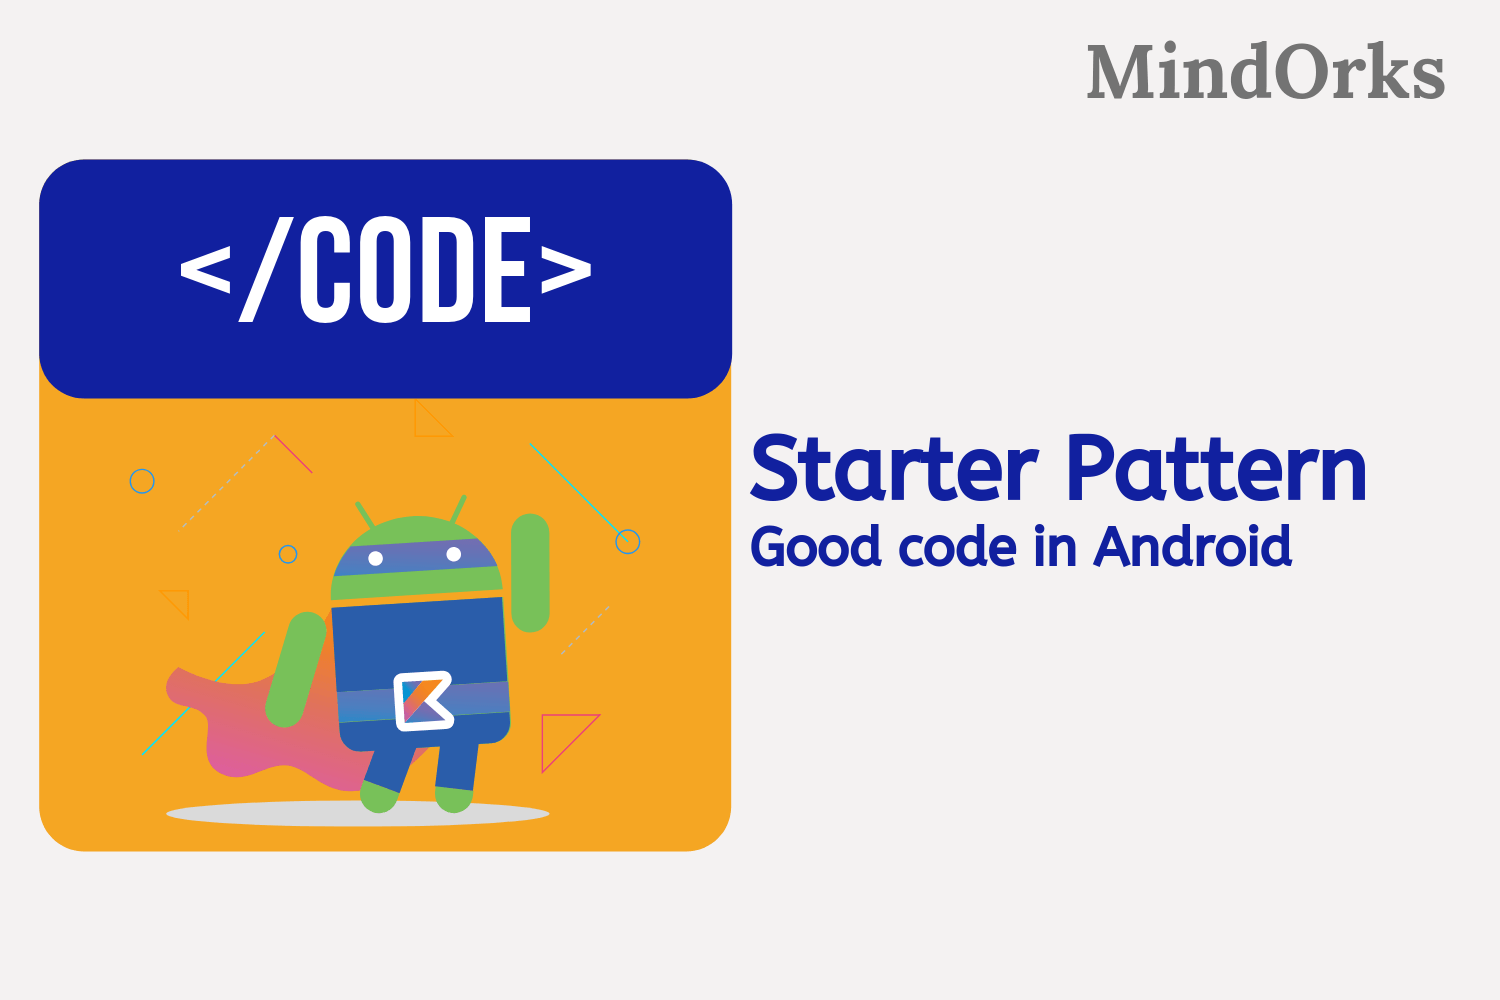 Learn to write good code in Android: Starter Pattern